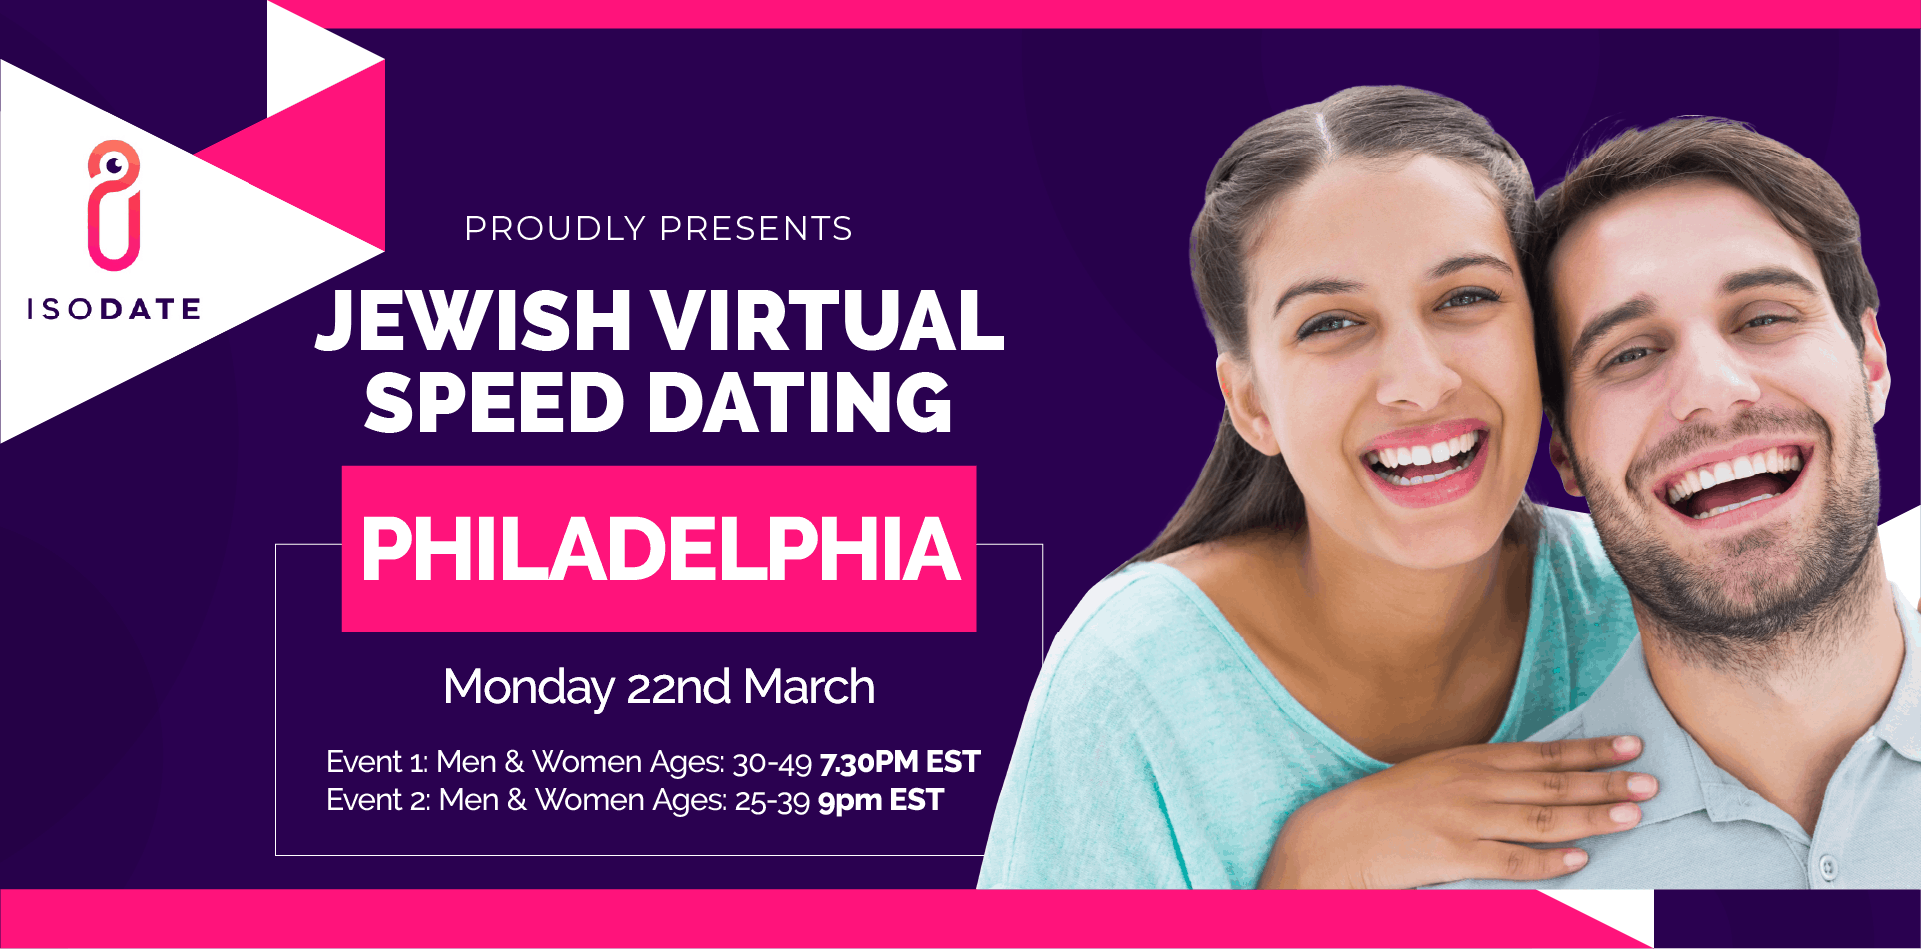 Isodate's Philadelphia Jewish Virtual Speed Dating - Swipe Less, Date More